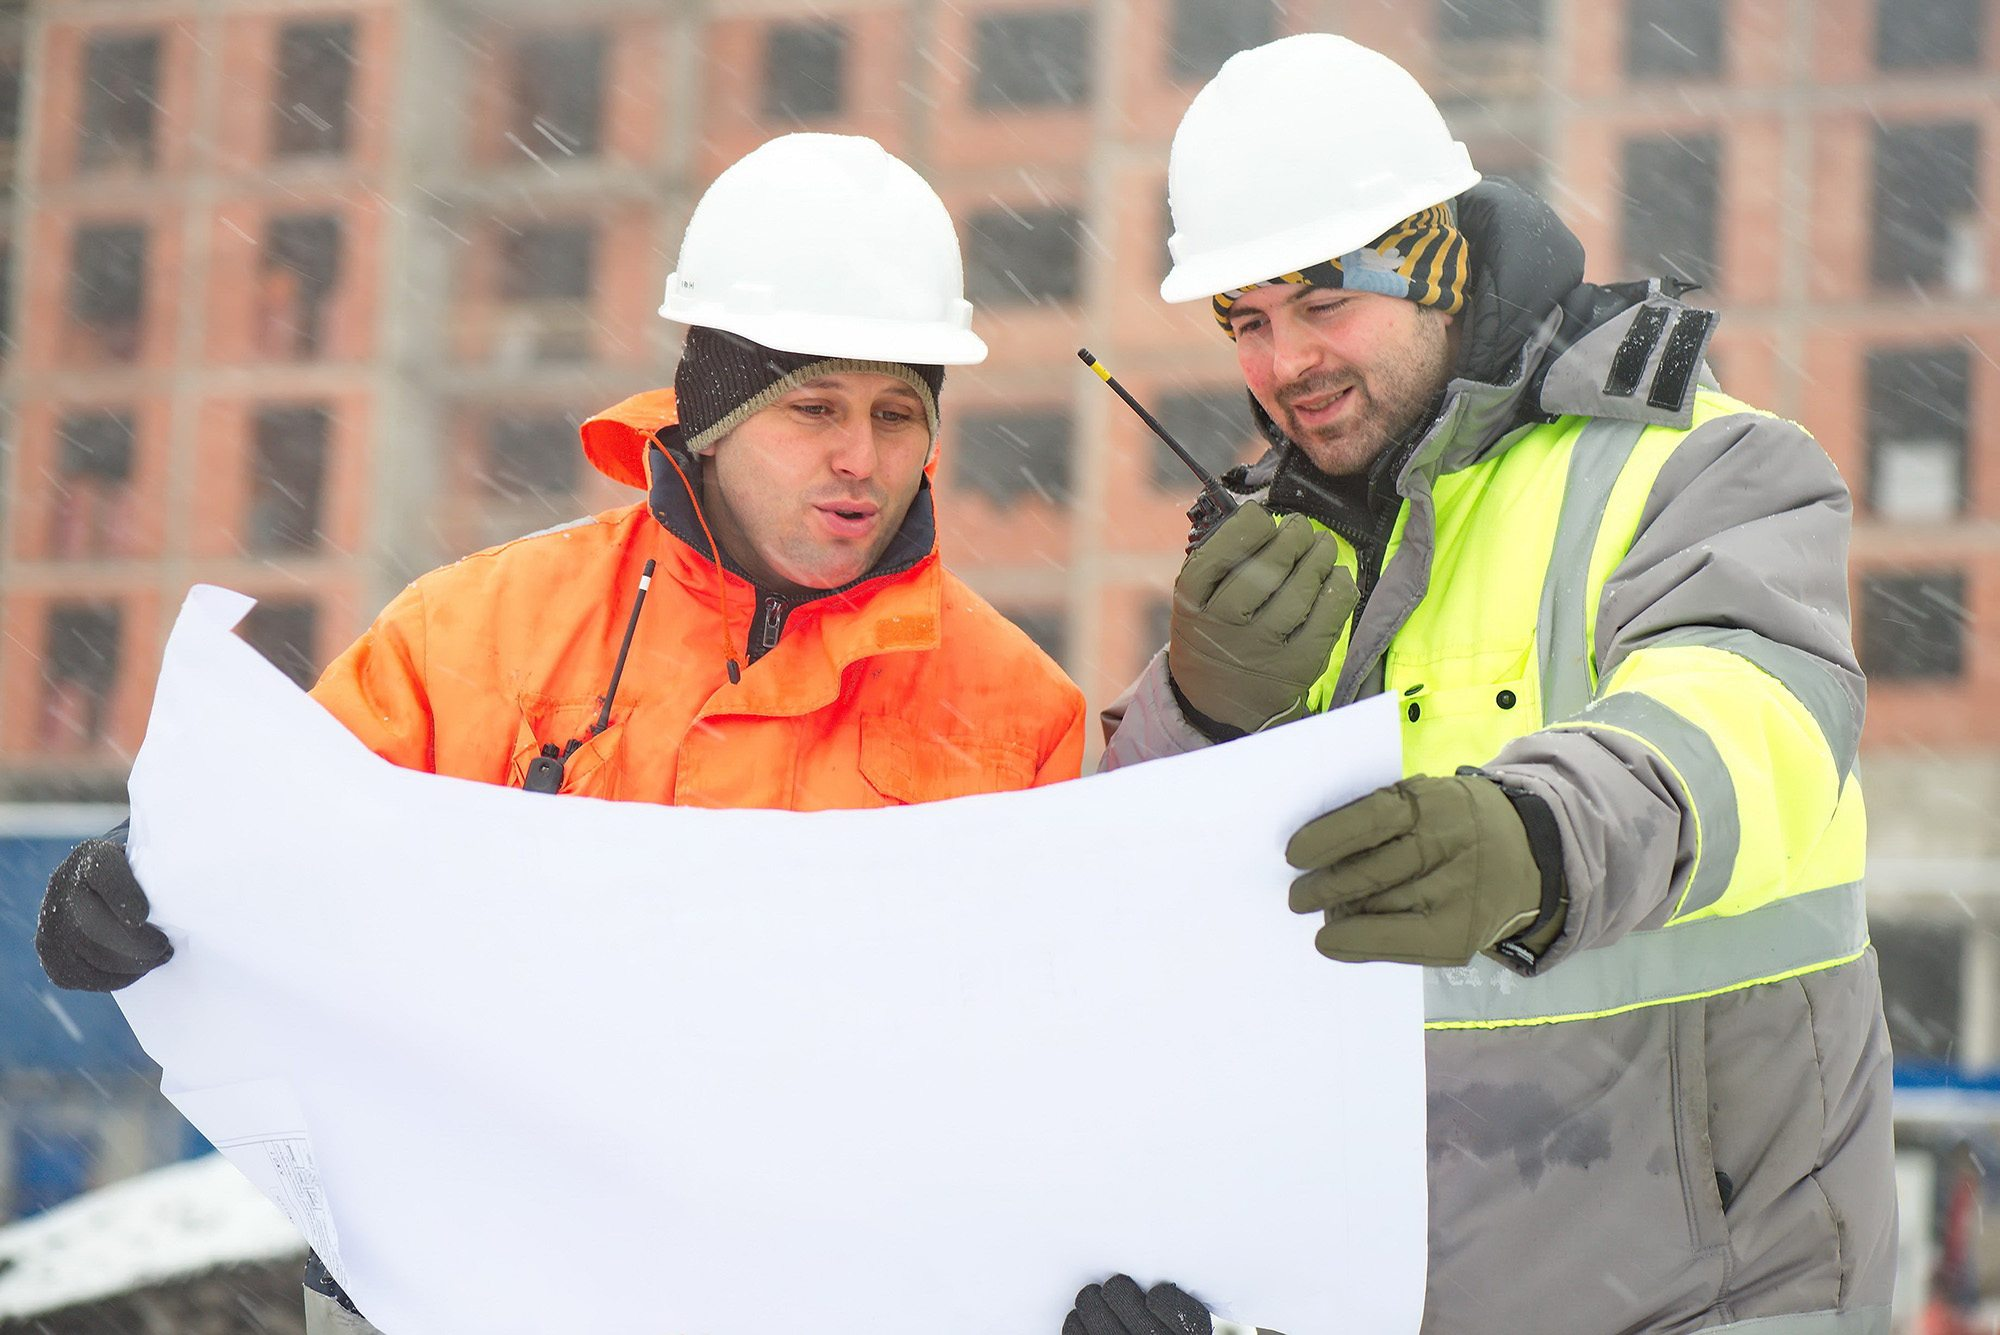 Keep warm on construction sites with these 12 easy tips